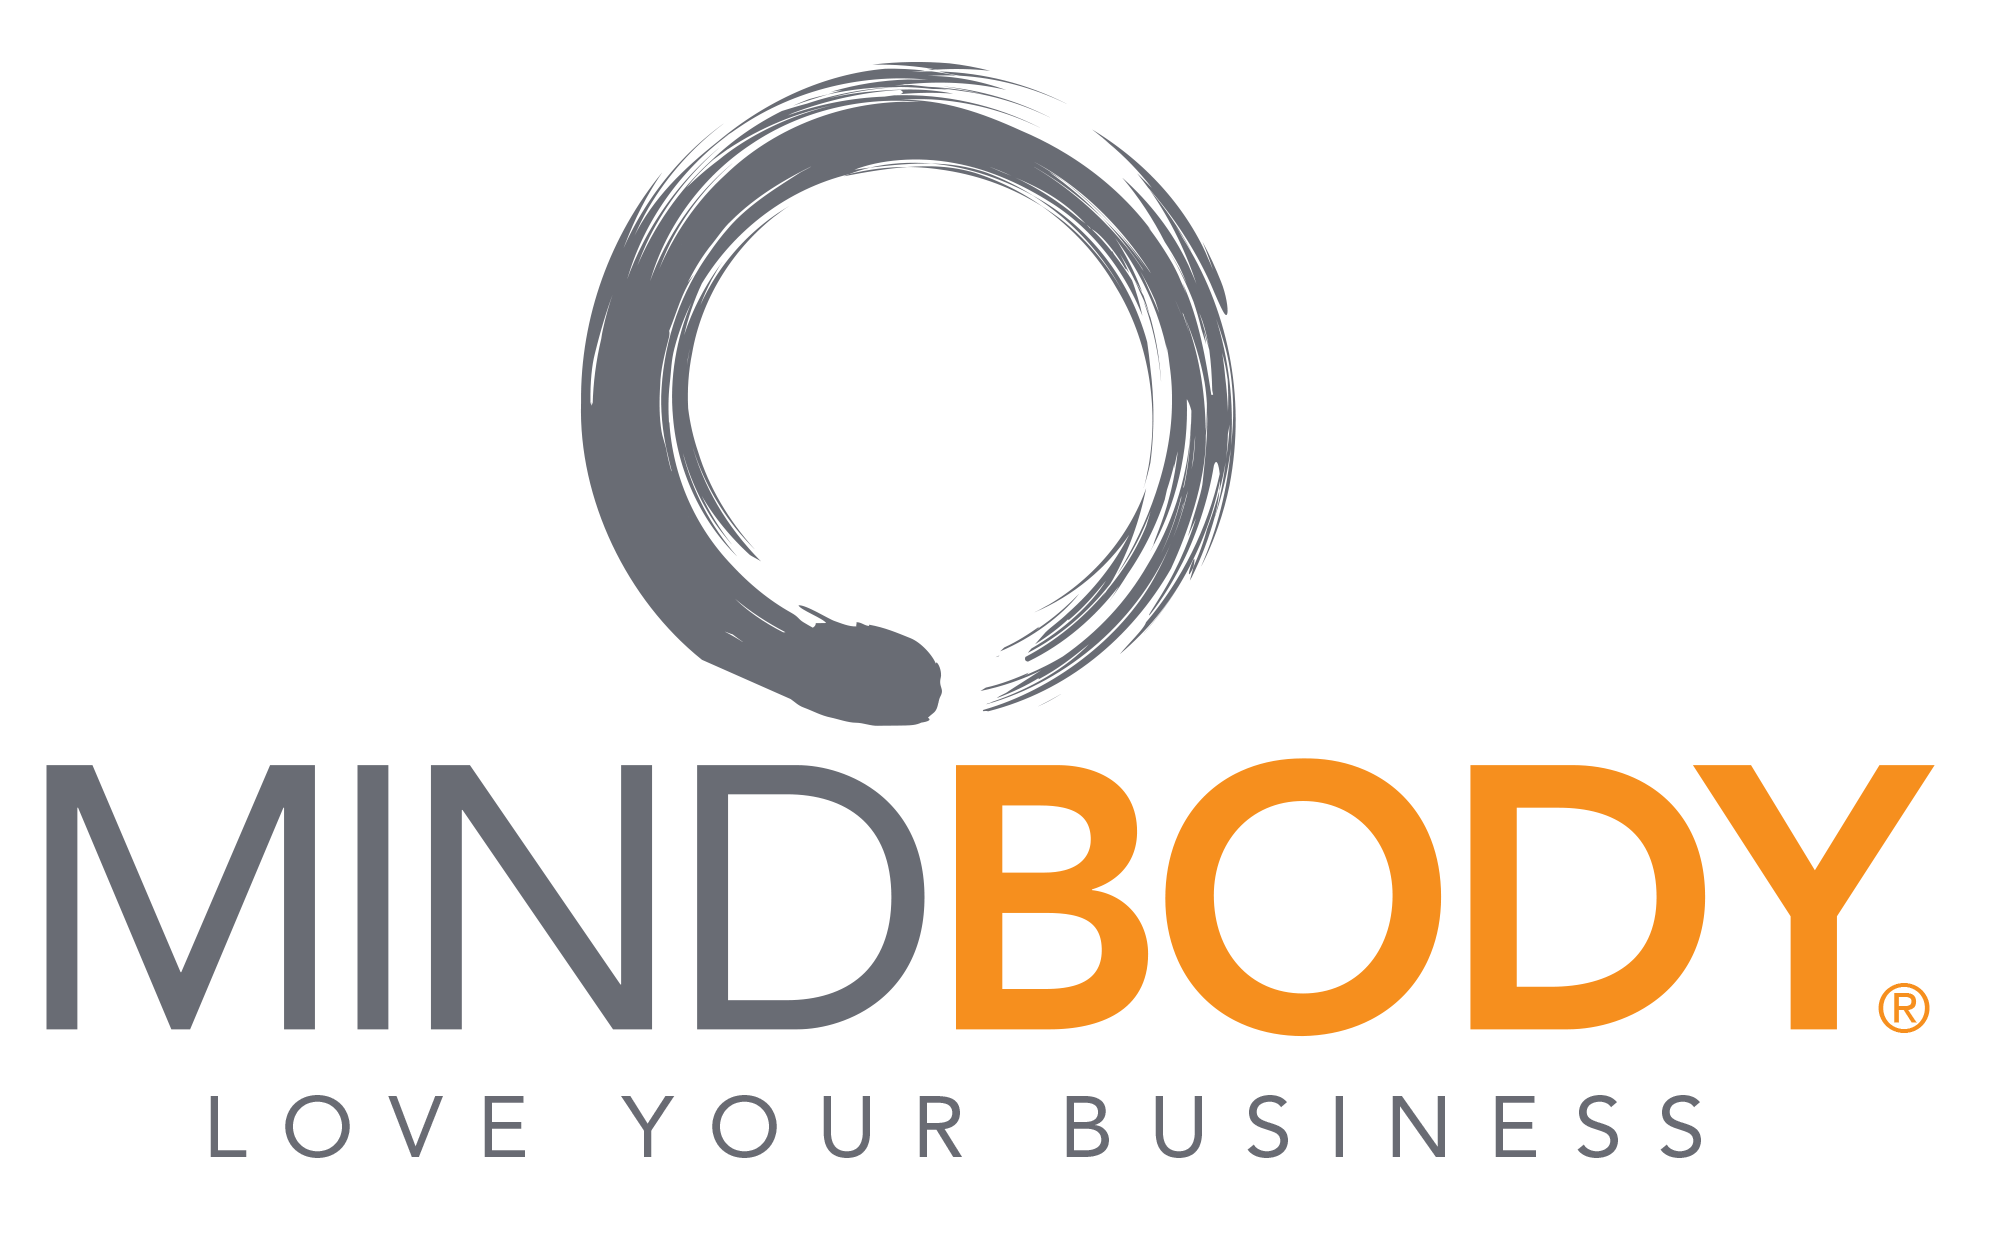 Quotes On Research Mb  Mindbody Inc Quotes News Research & Opinions  Quote